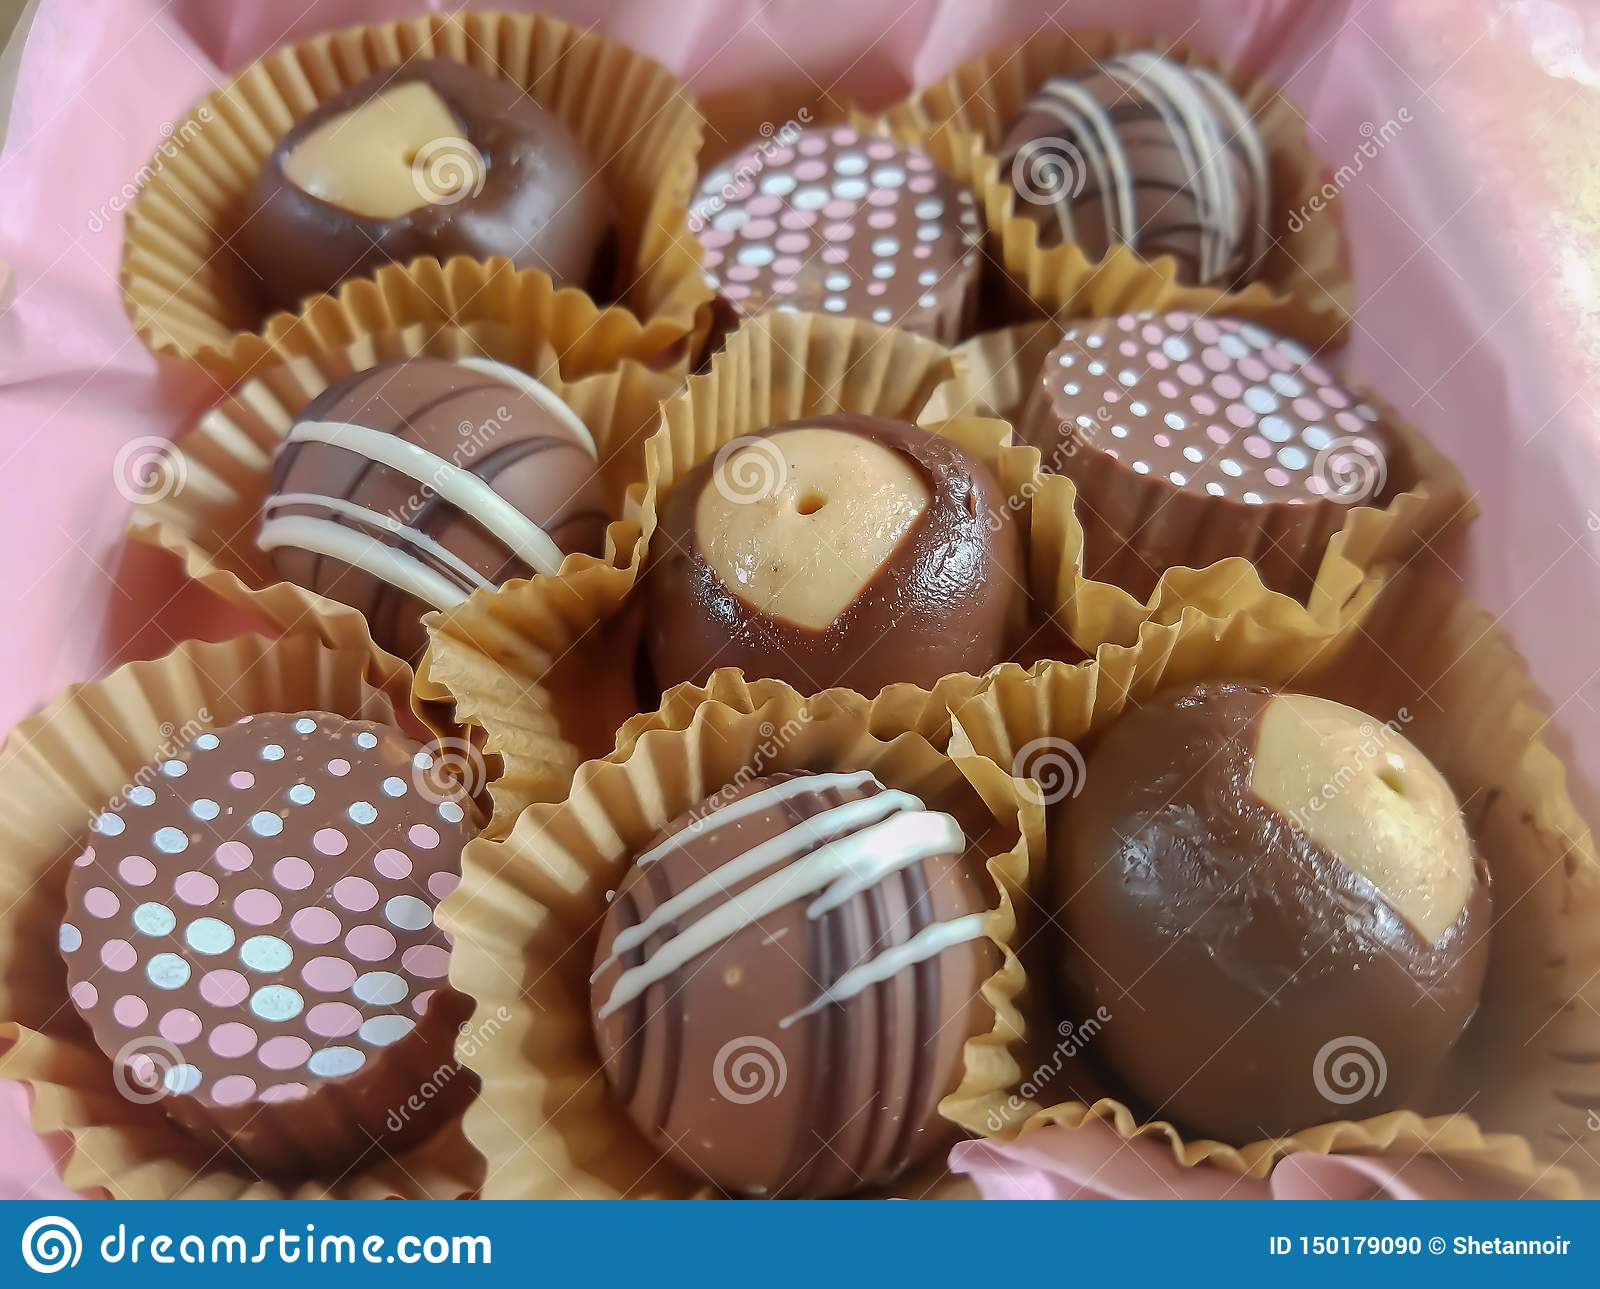 Buckeye Candy Photos Free Royalty Free Stock Photos From Dreamstime